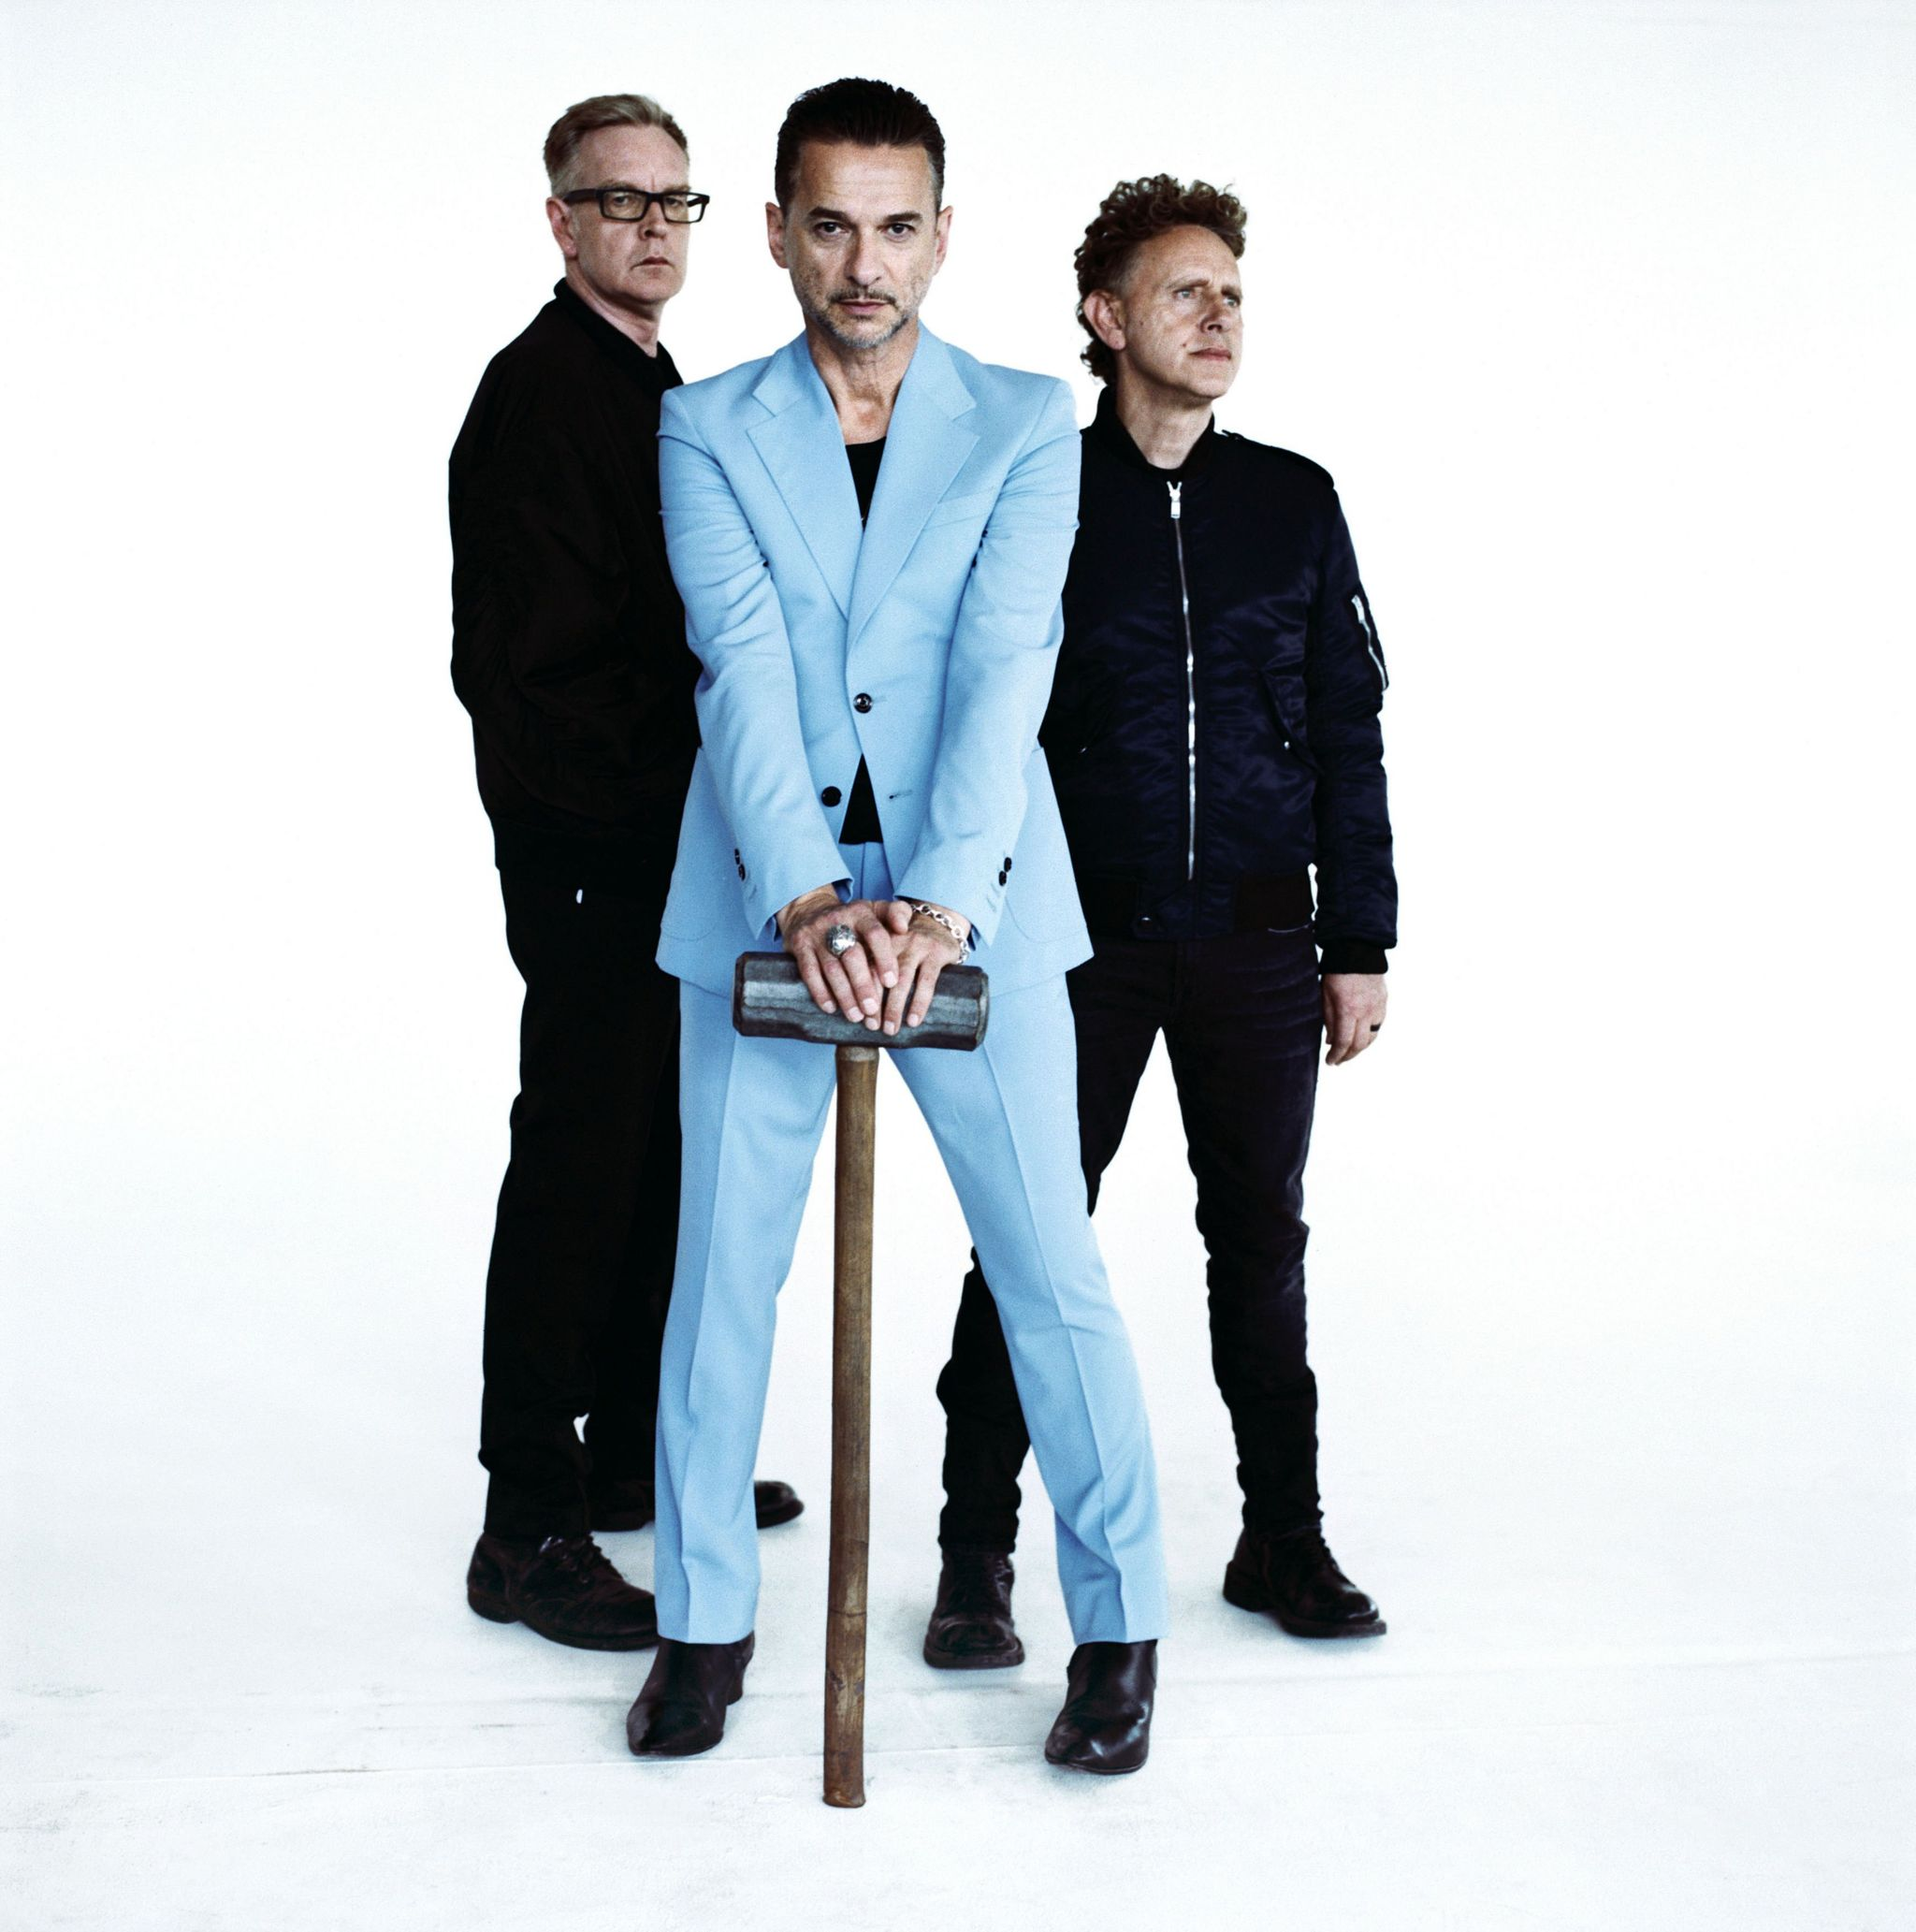 Handout photo of Depeche Mode, who will headline the BBC 6 Music Festival in Glasgow. PRESS ASSOCIATION Photo. Issue date: Tuesday 21 February 2017